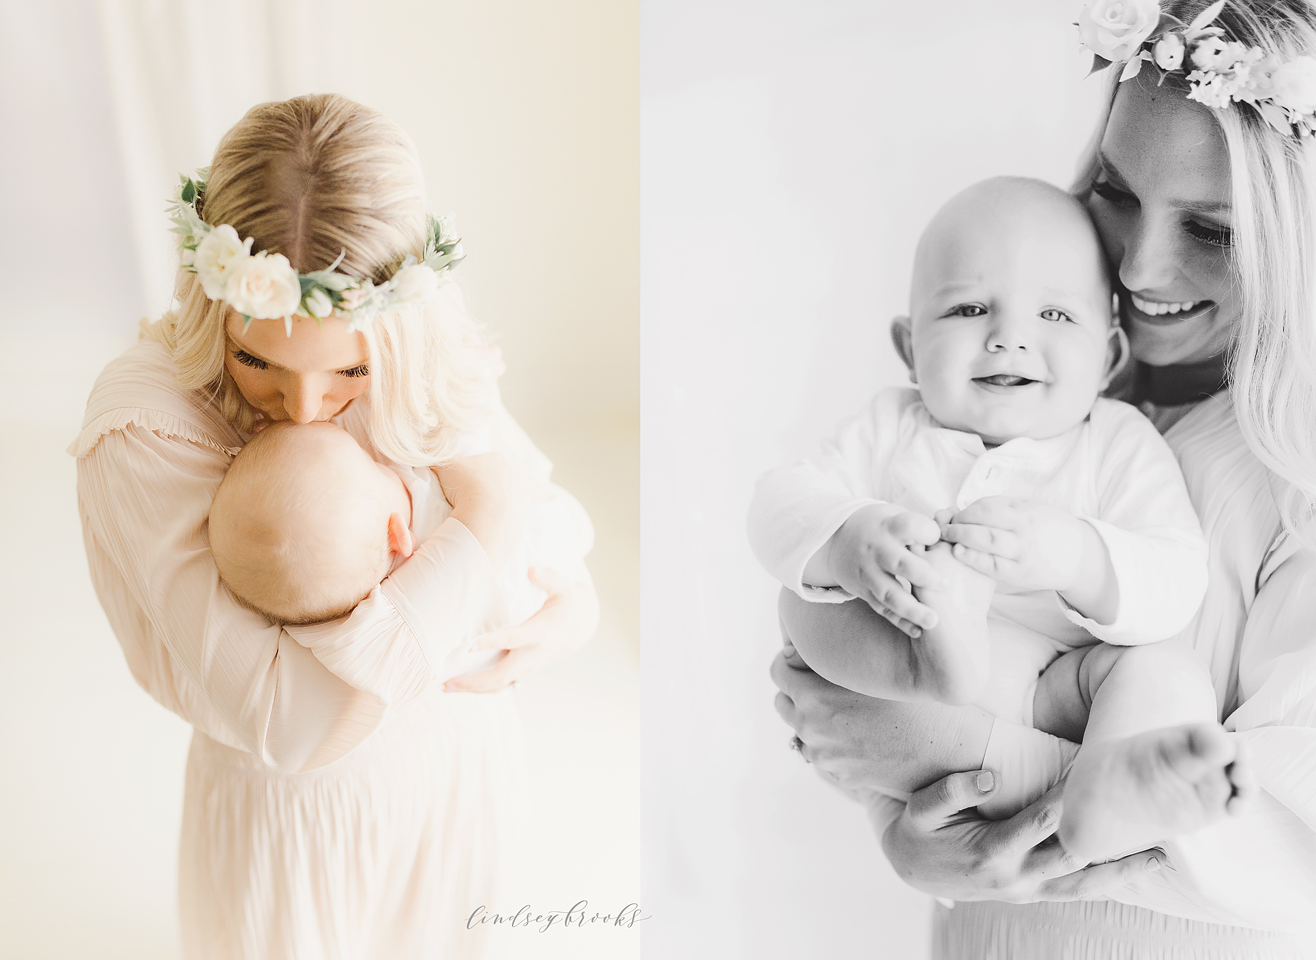 oklahoma-city-photographers-newborn-baby-motherhood-six-months-infant-child-family-photos-portraits-studio-simple-natural-light-8.png